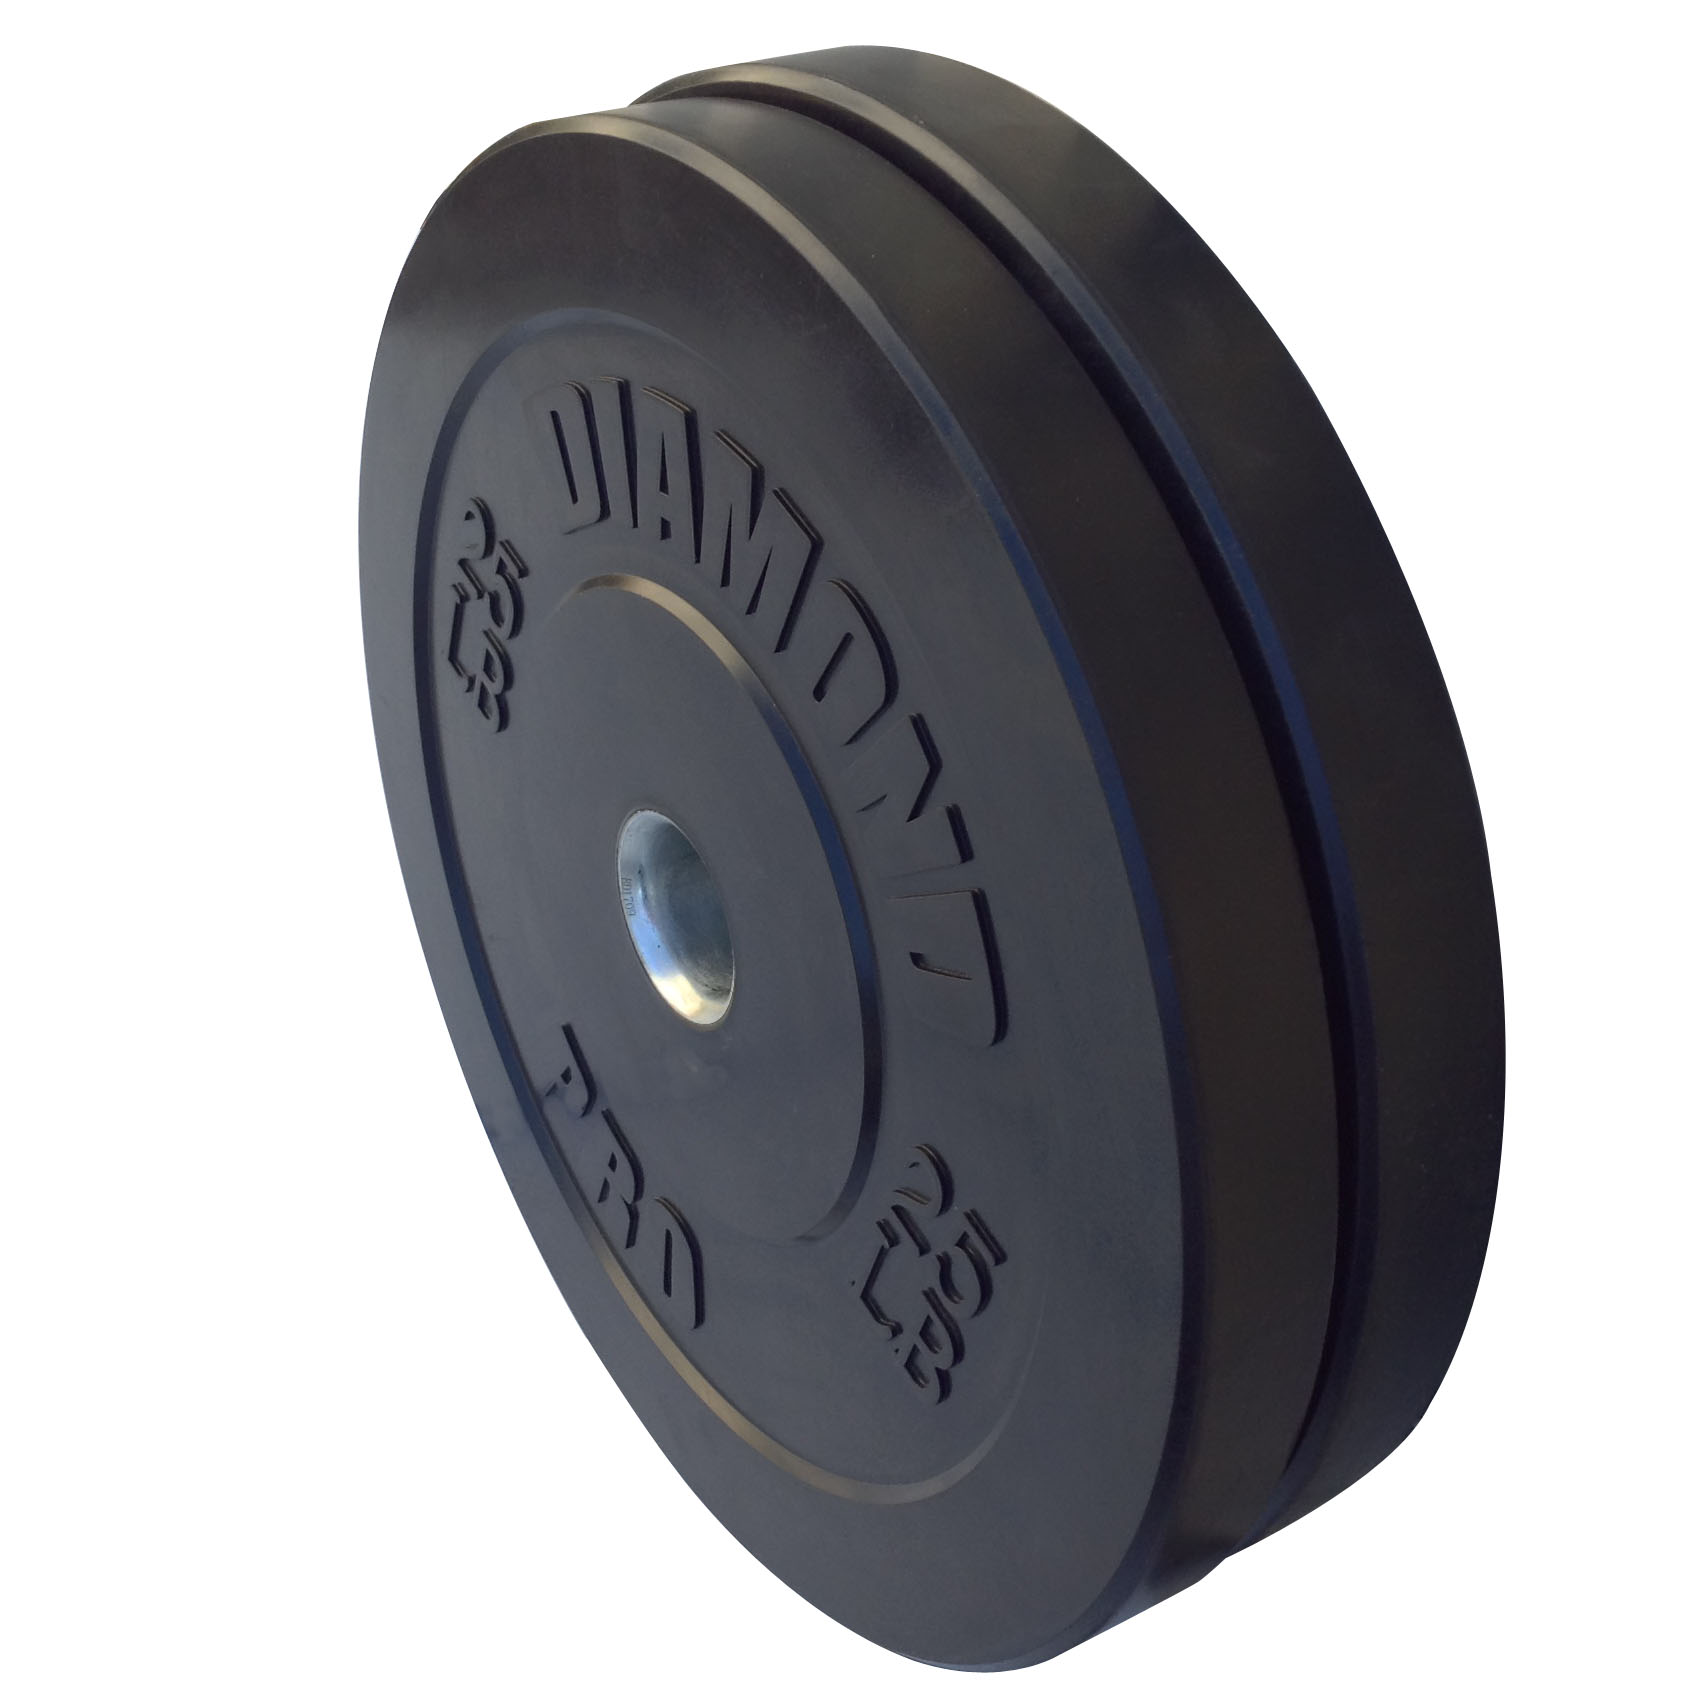 Diamond Pro 25 lb Black Bumper Plate Pair